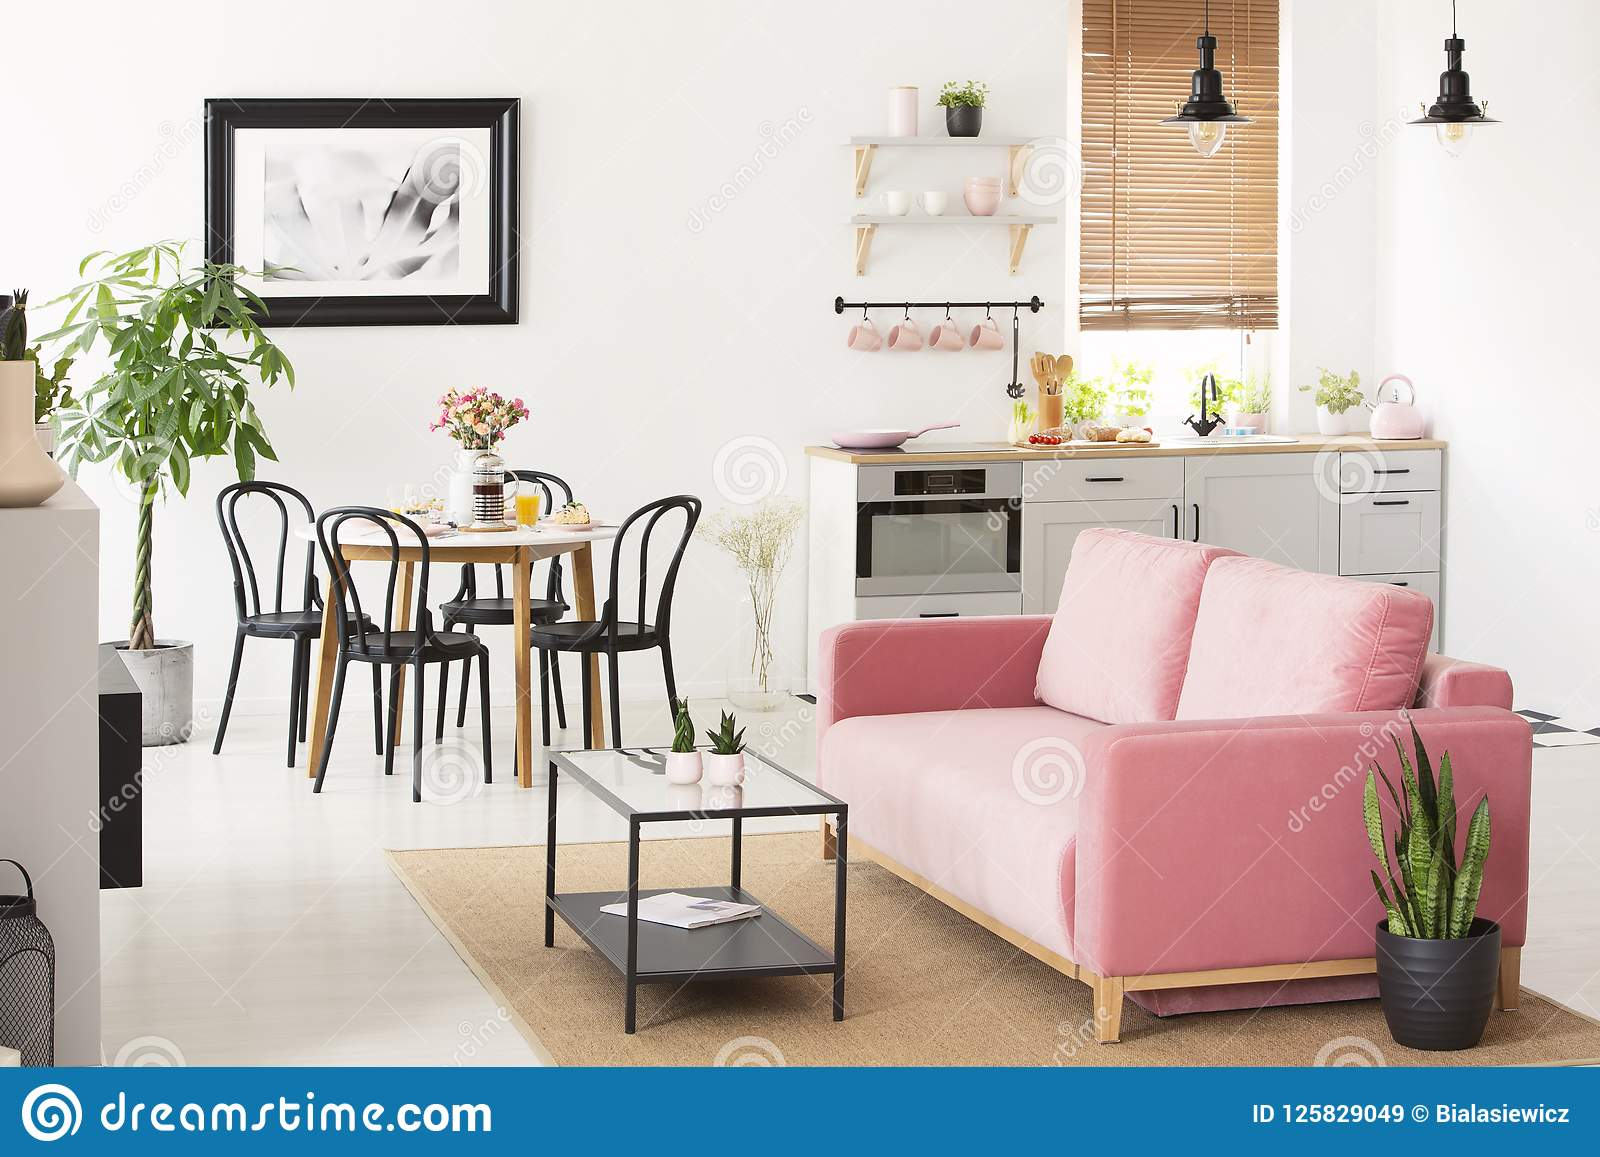 Dining Room Settee | Pink Settee Near Black Chairs At Dining Table In Flat Interior With